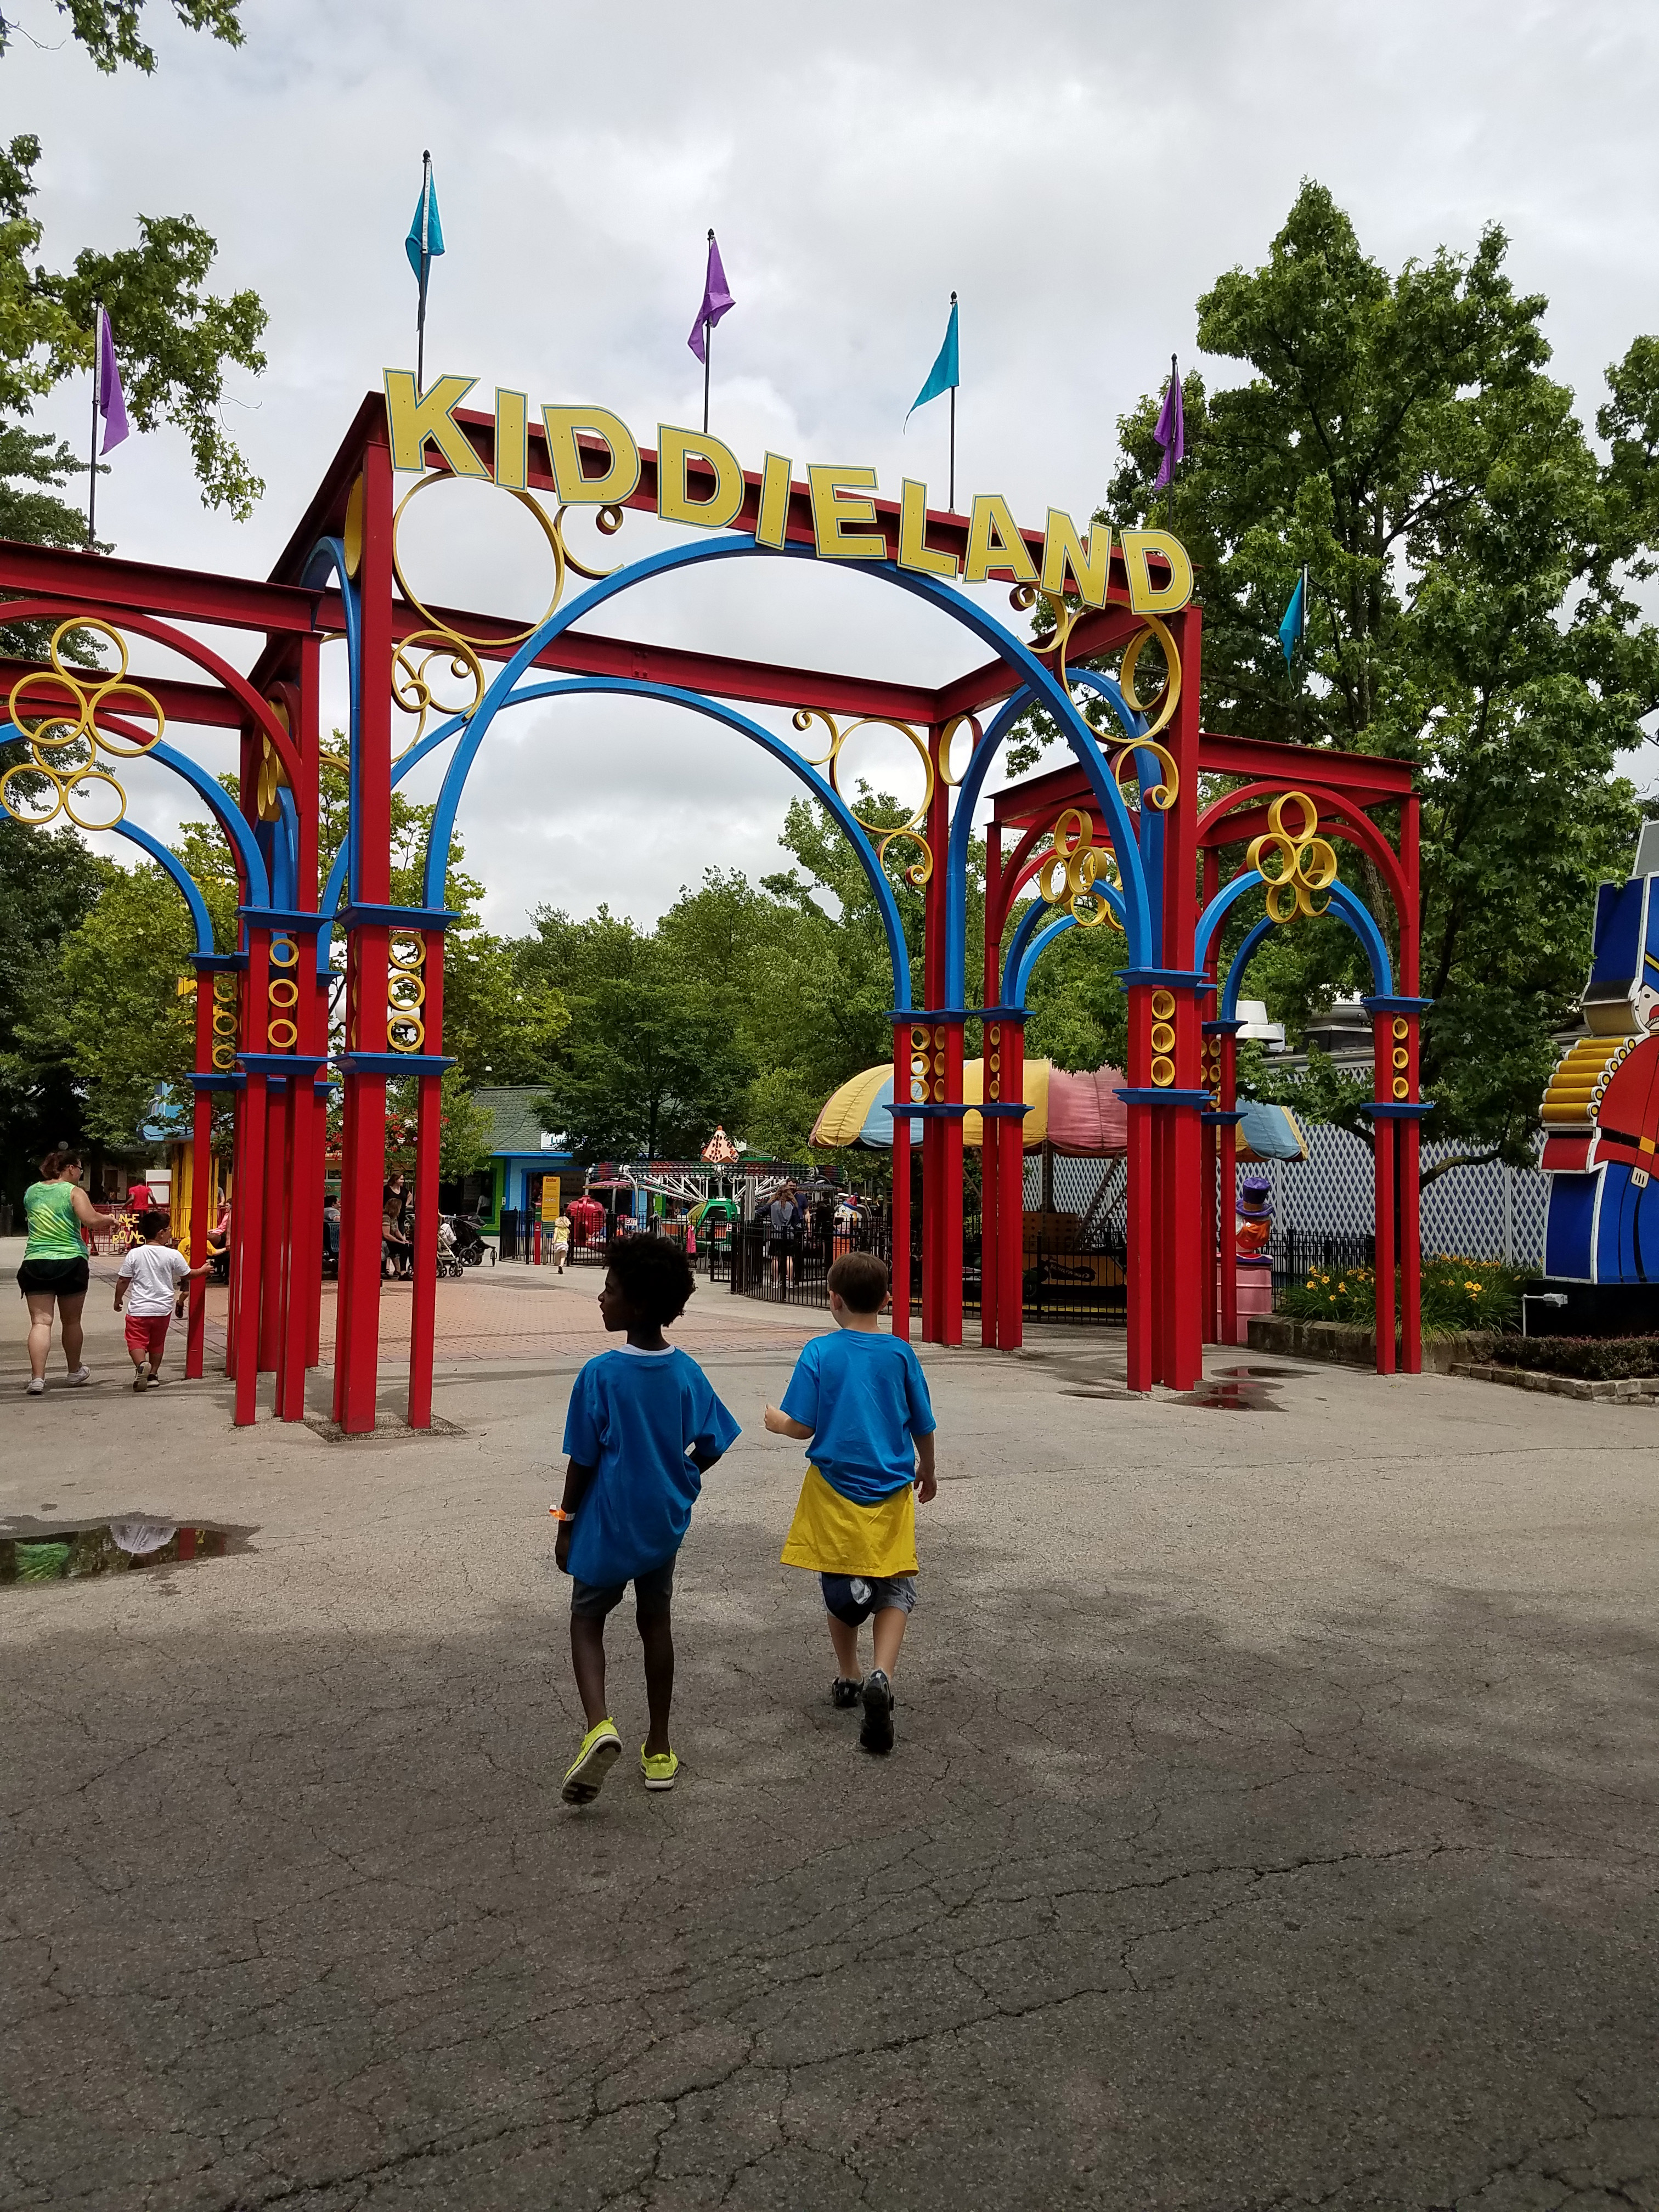 Kennywood Park Kiddieland in Pittsburgh